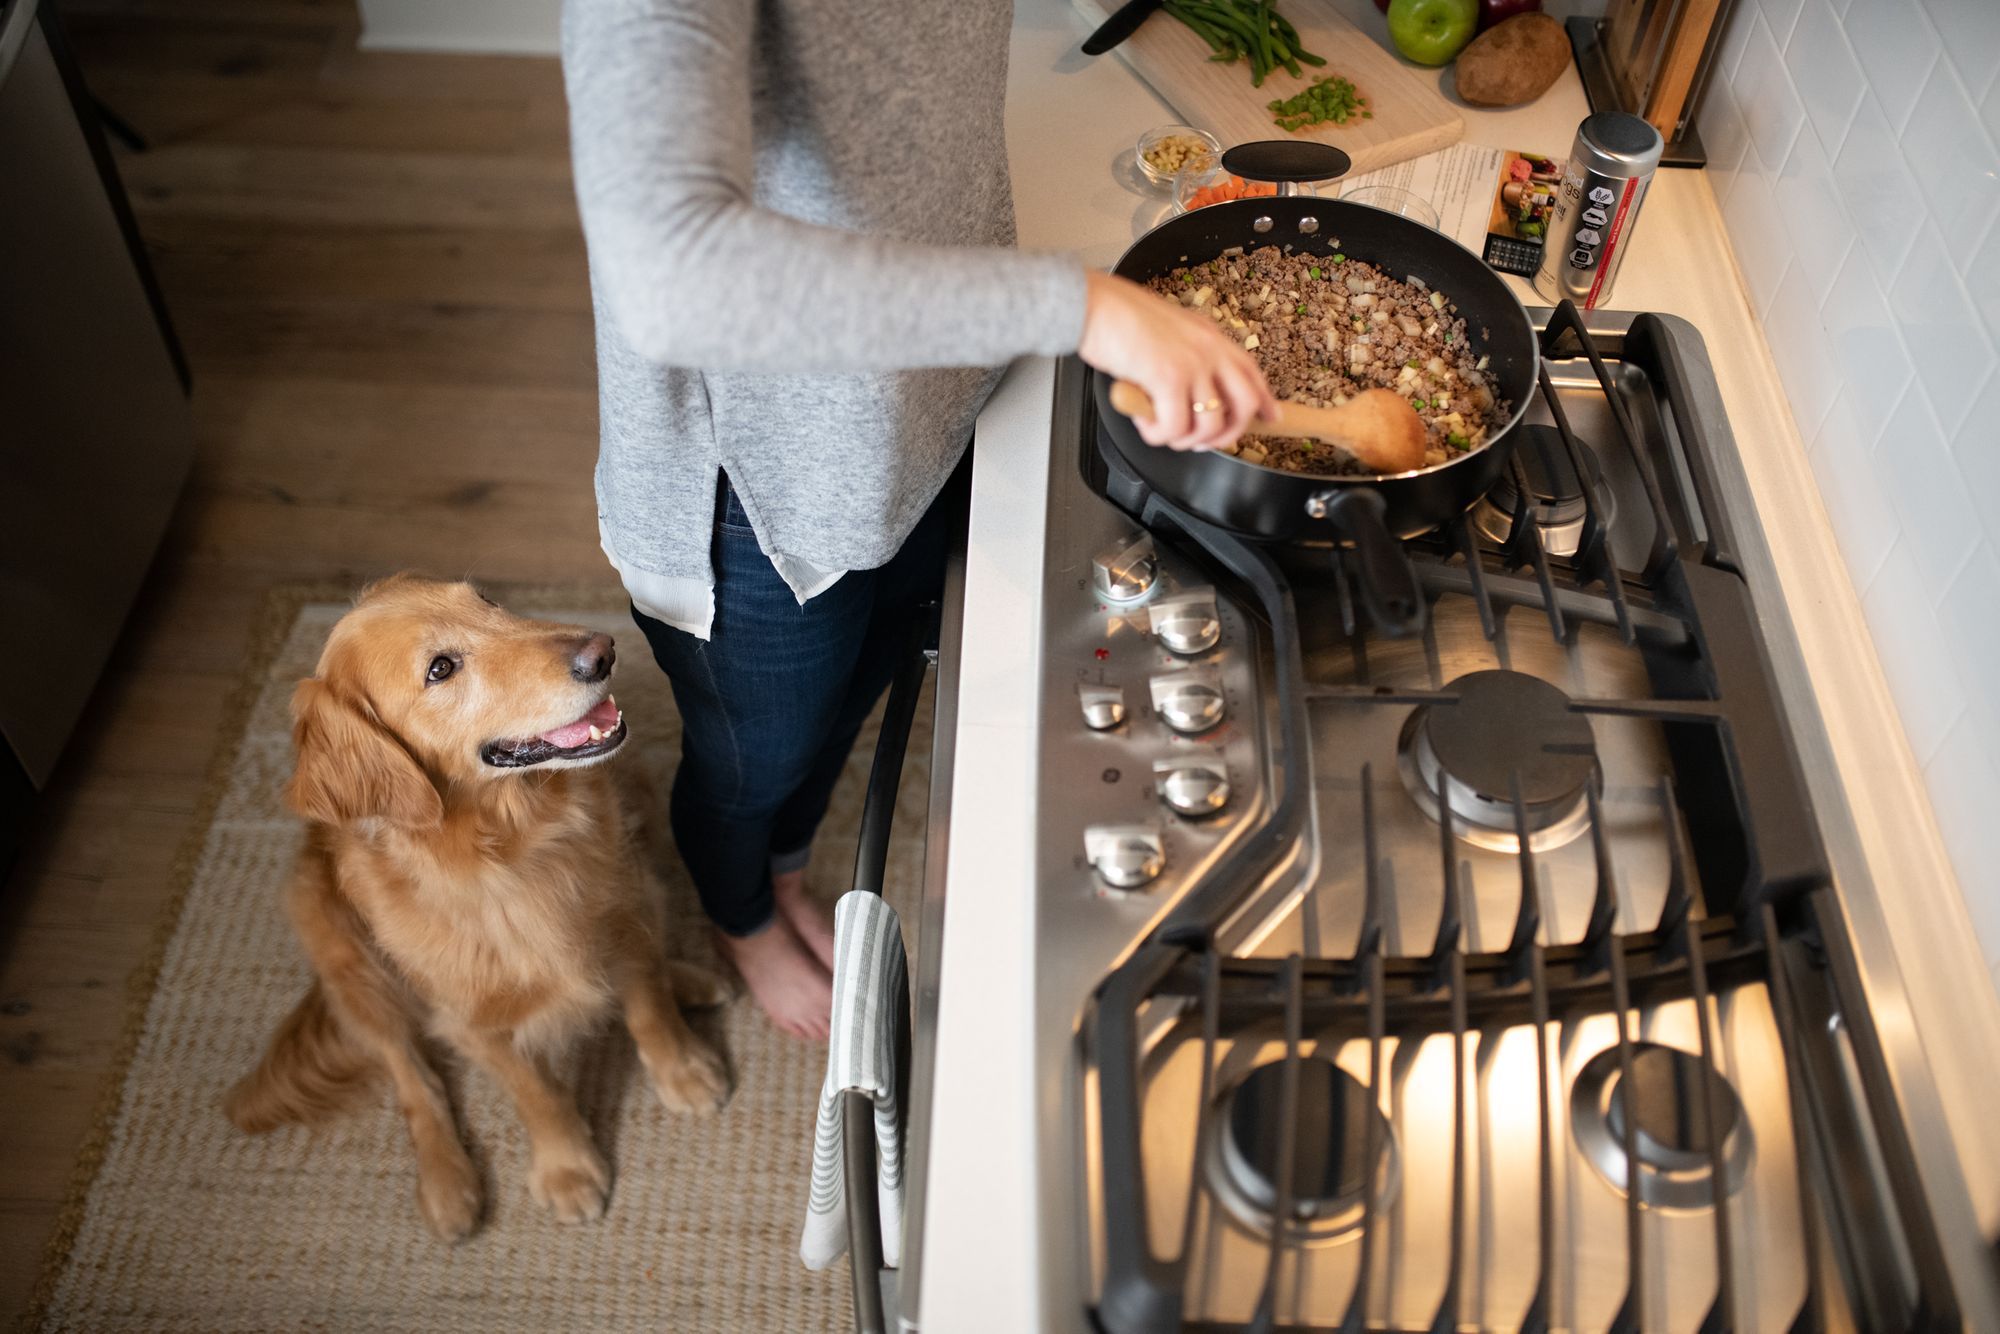 Prepare A Healthy Dinner For Your Dog With JustFoodForDogs!